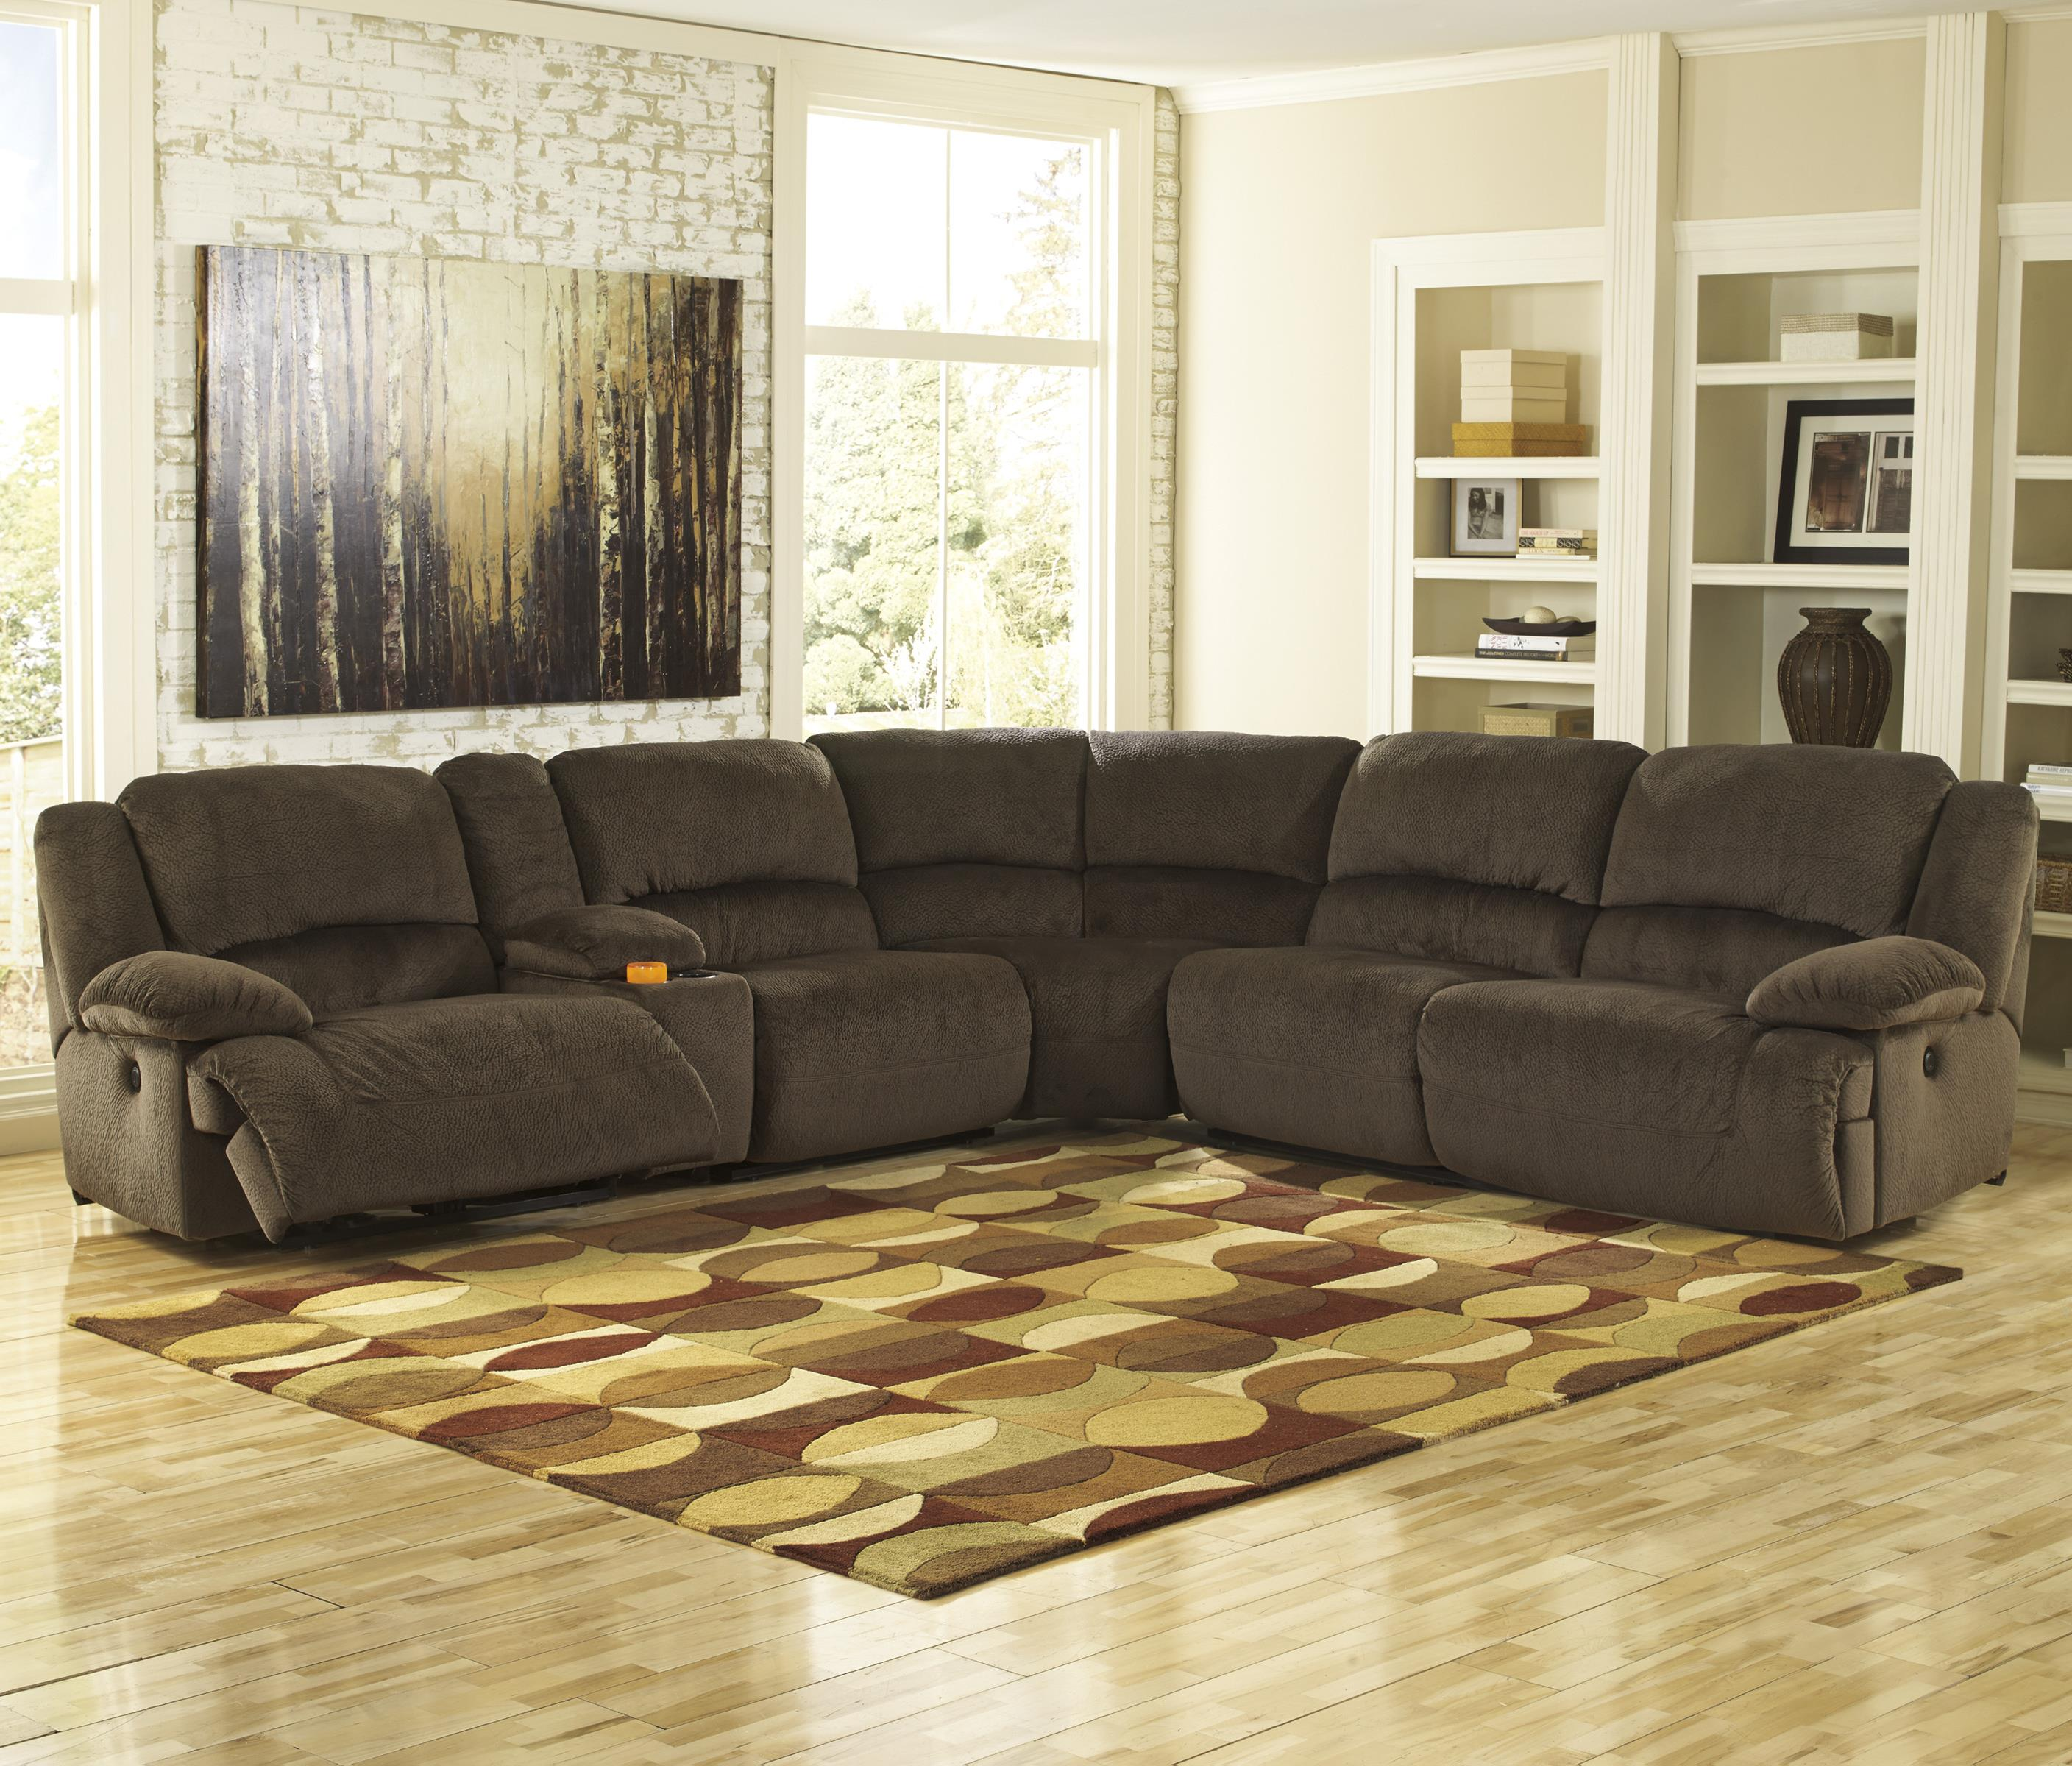 Signature Design by Ashley Toletta - Chocolate Reclining Sectional with Console - Item Number: 5670140+57+2x46+77+41